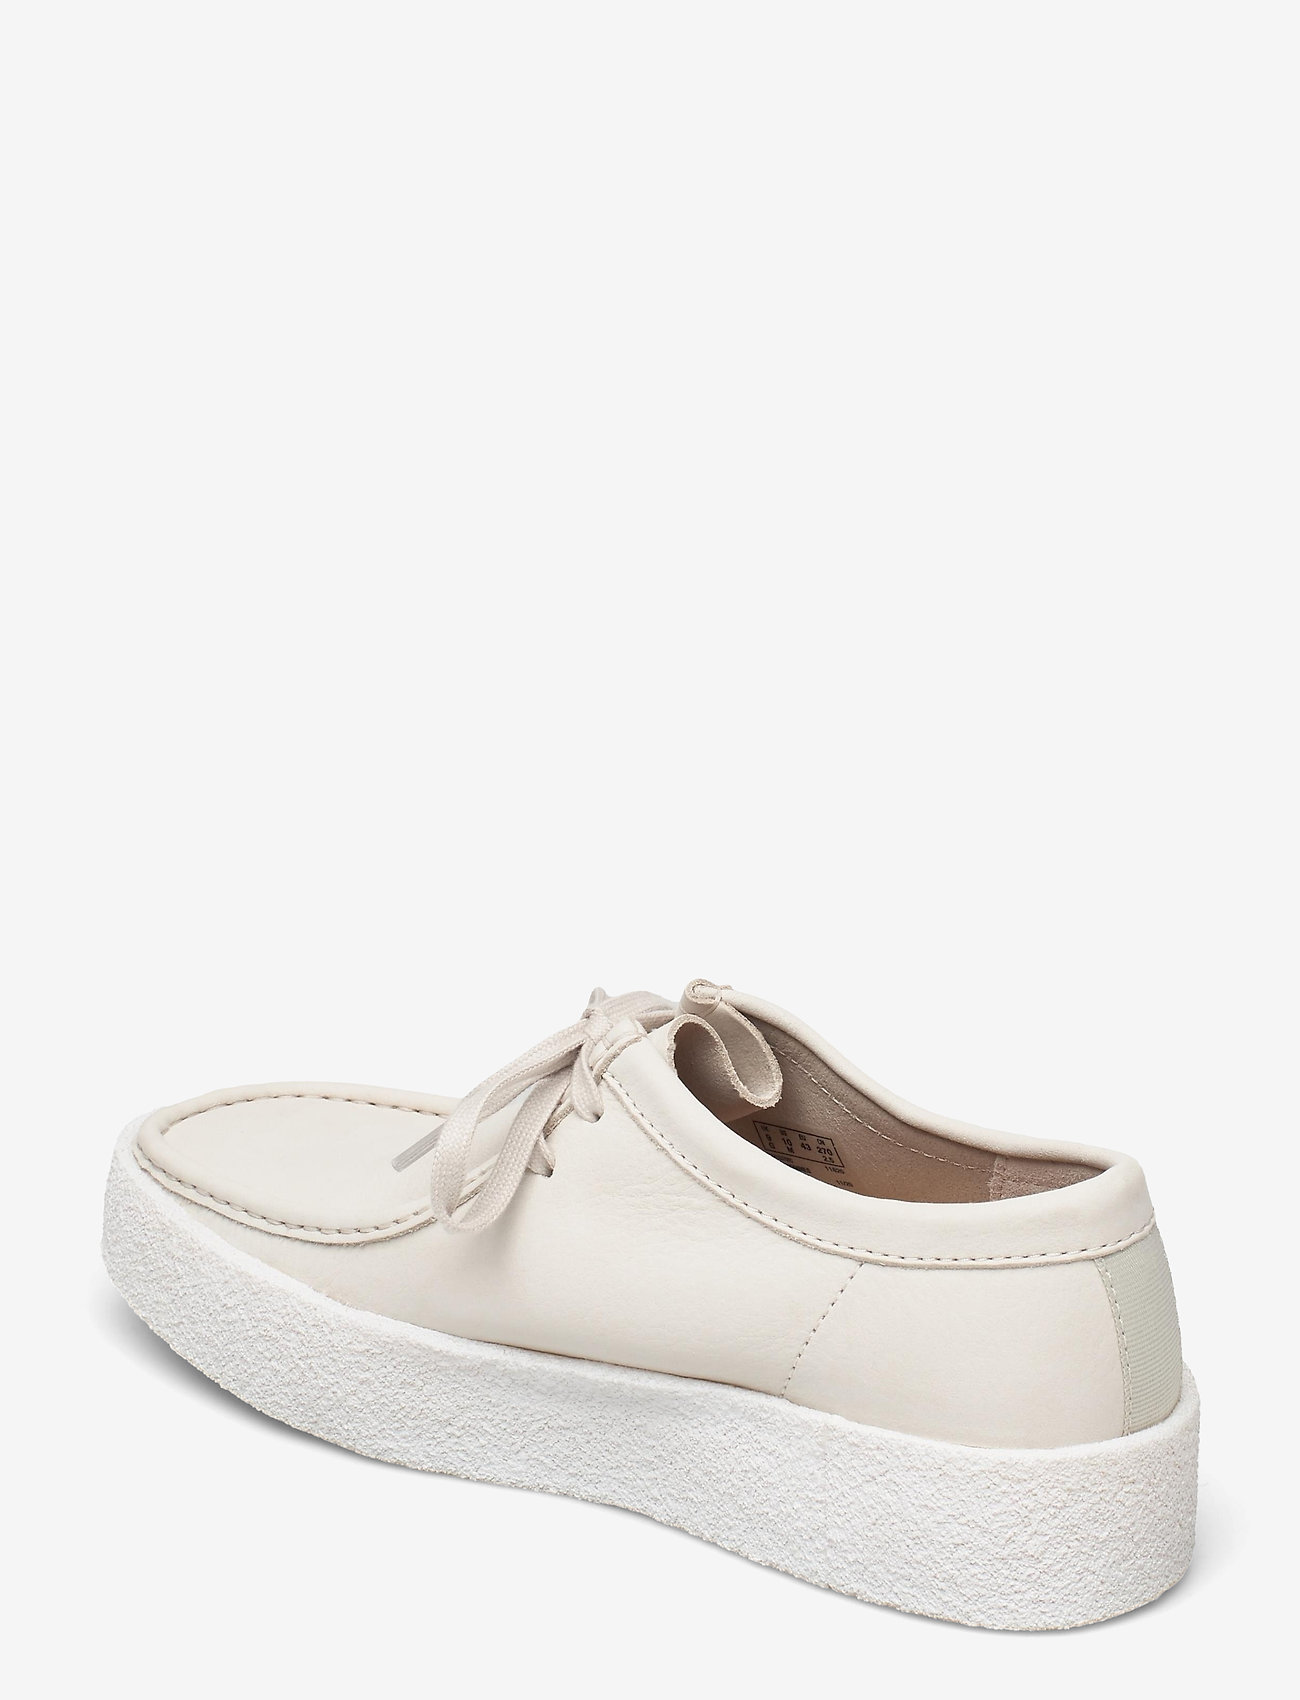 Clarks Originals - Wallabee Cup - skor - white nubuck - 2